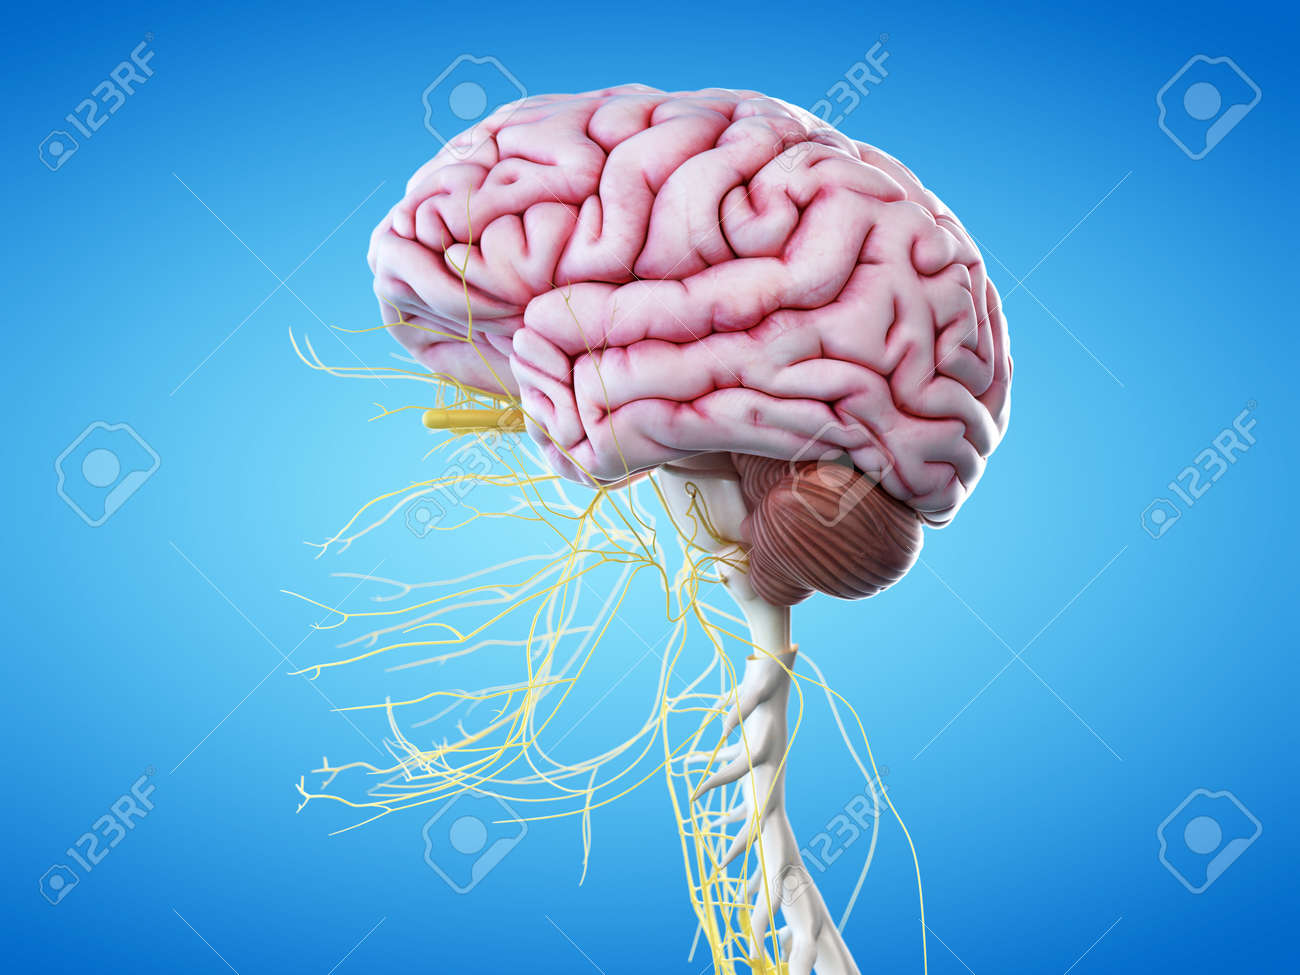 3d rendered illustration of the human brain and head nerves stock  illustration - 60134323